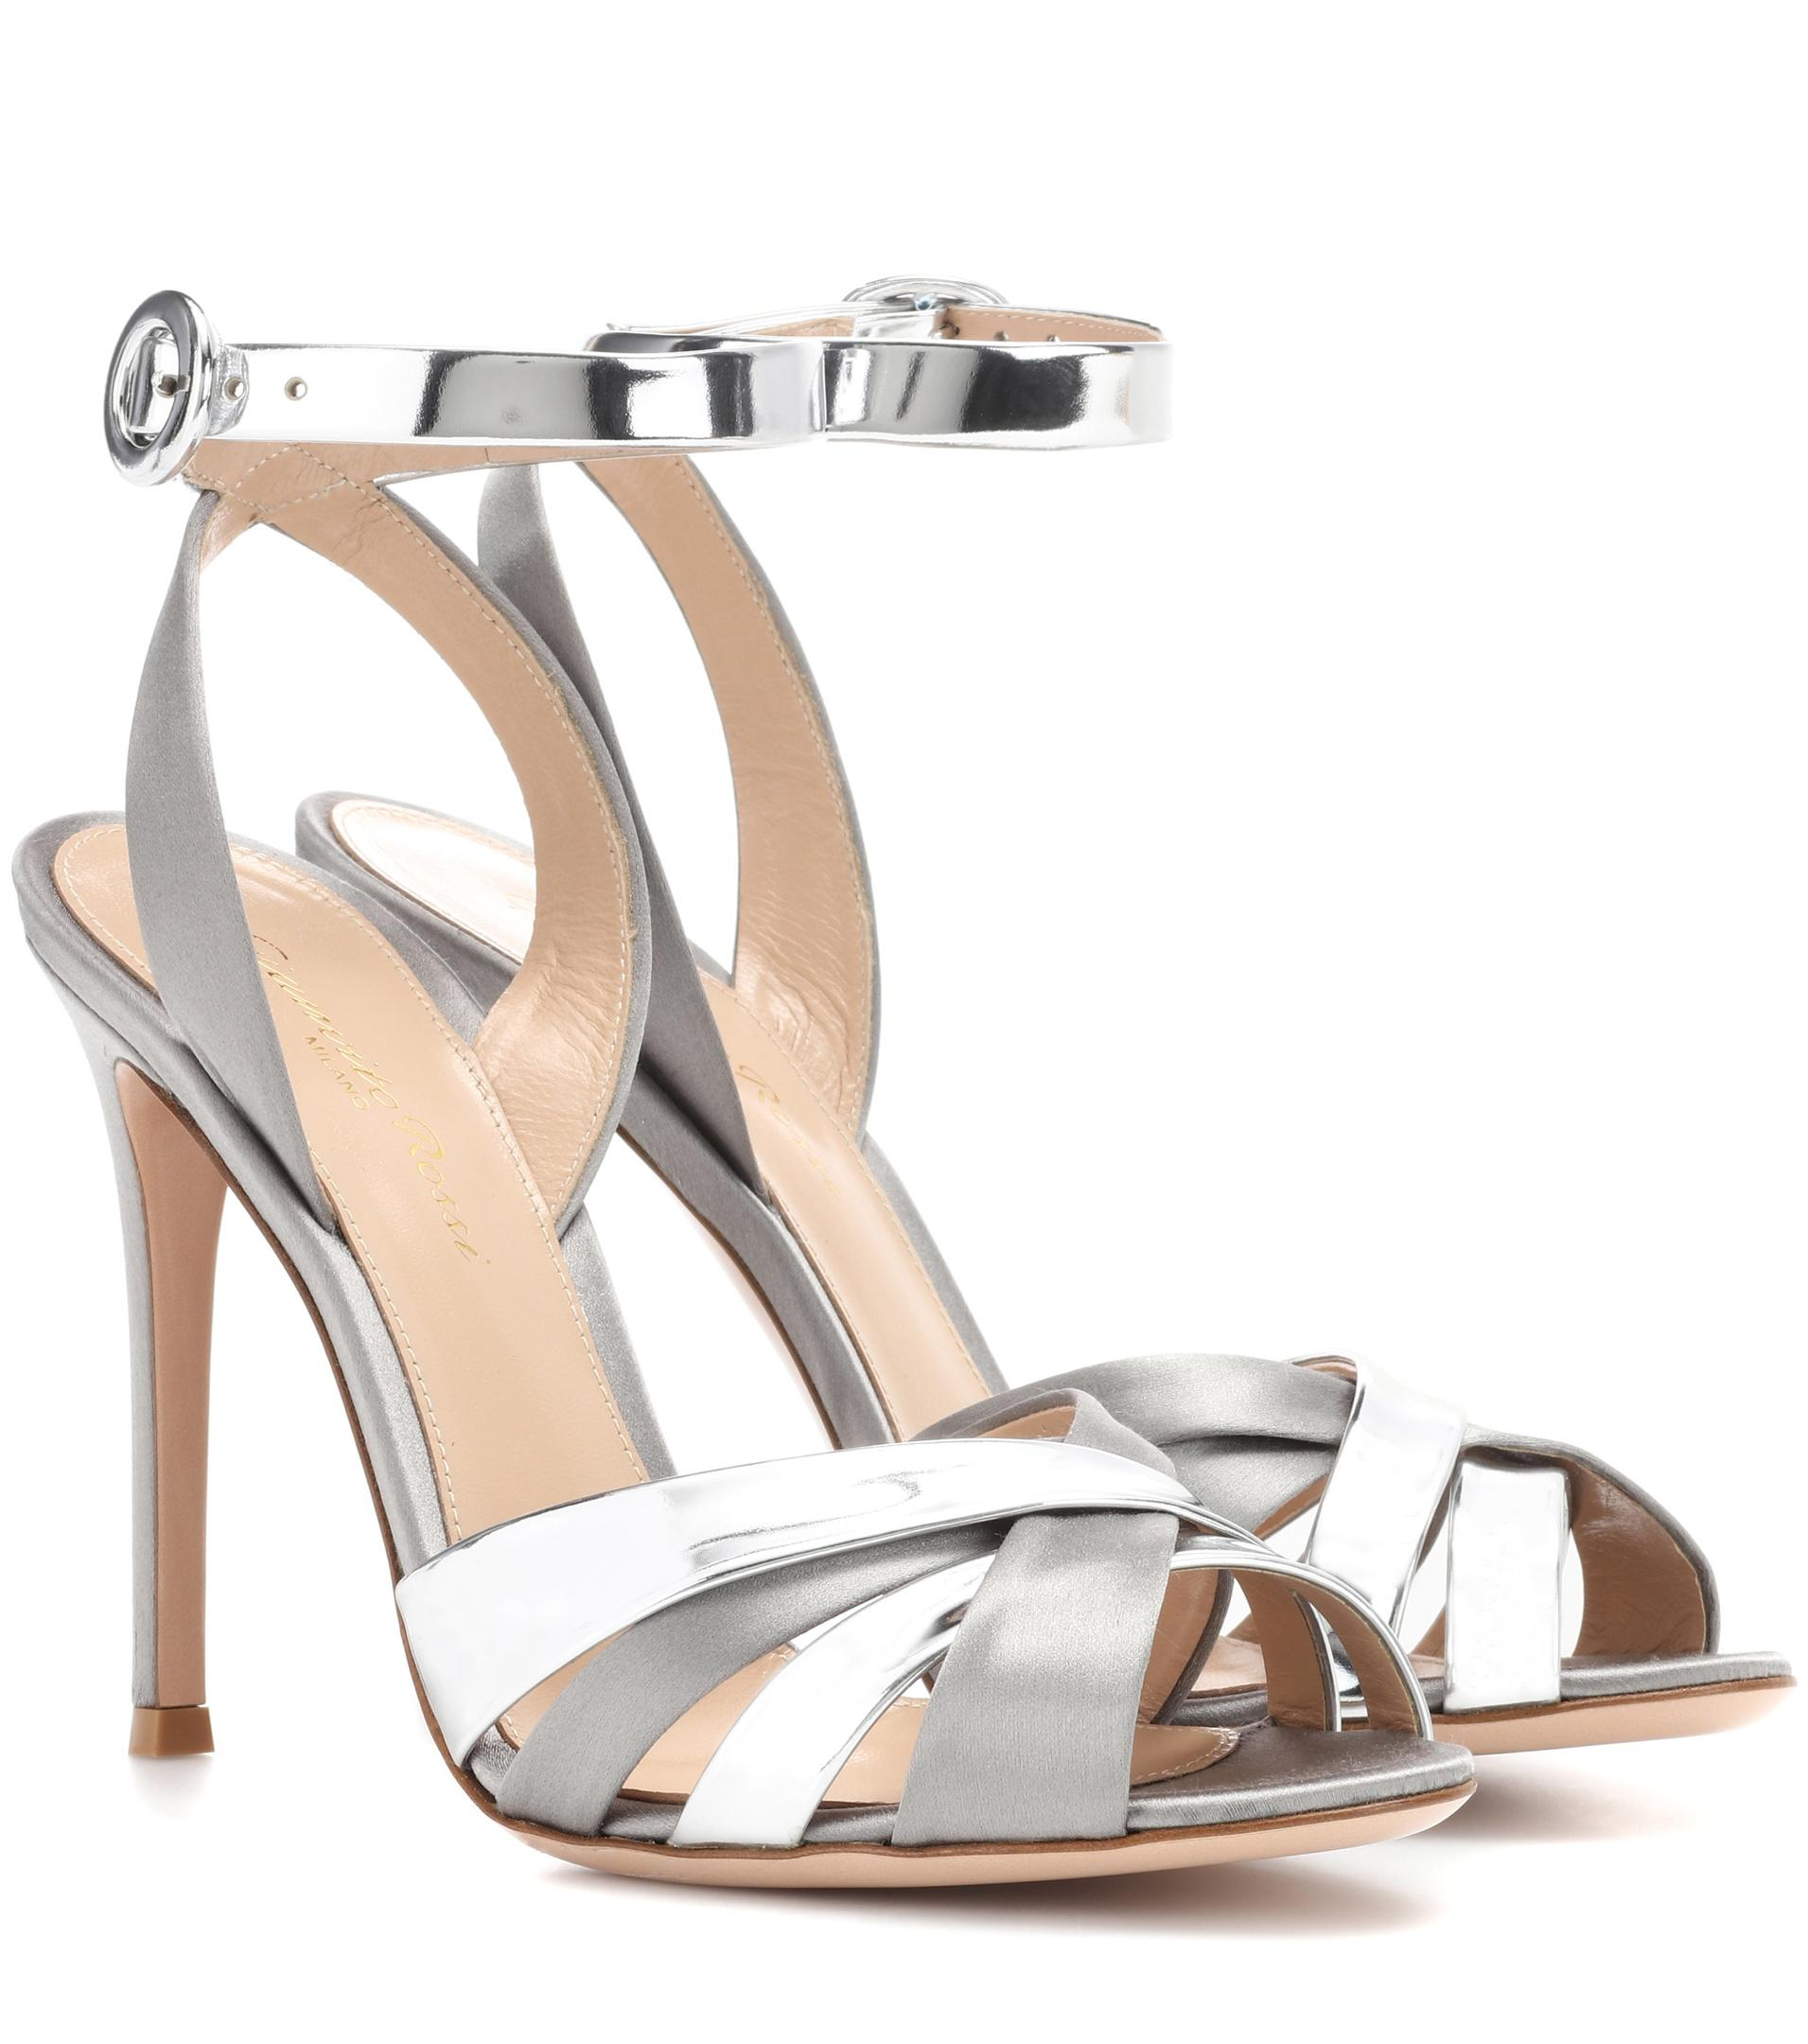 Gianvito Rossi Multistrap Wedge Sandals cheap finishline Cheapest for sale clearance finishline 4TnAKg2